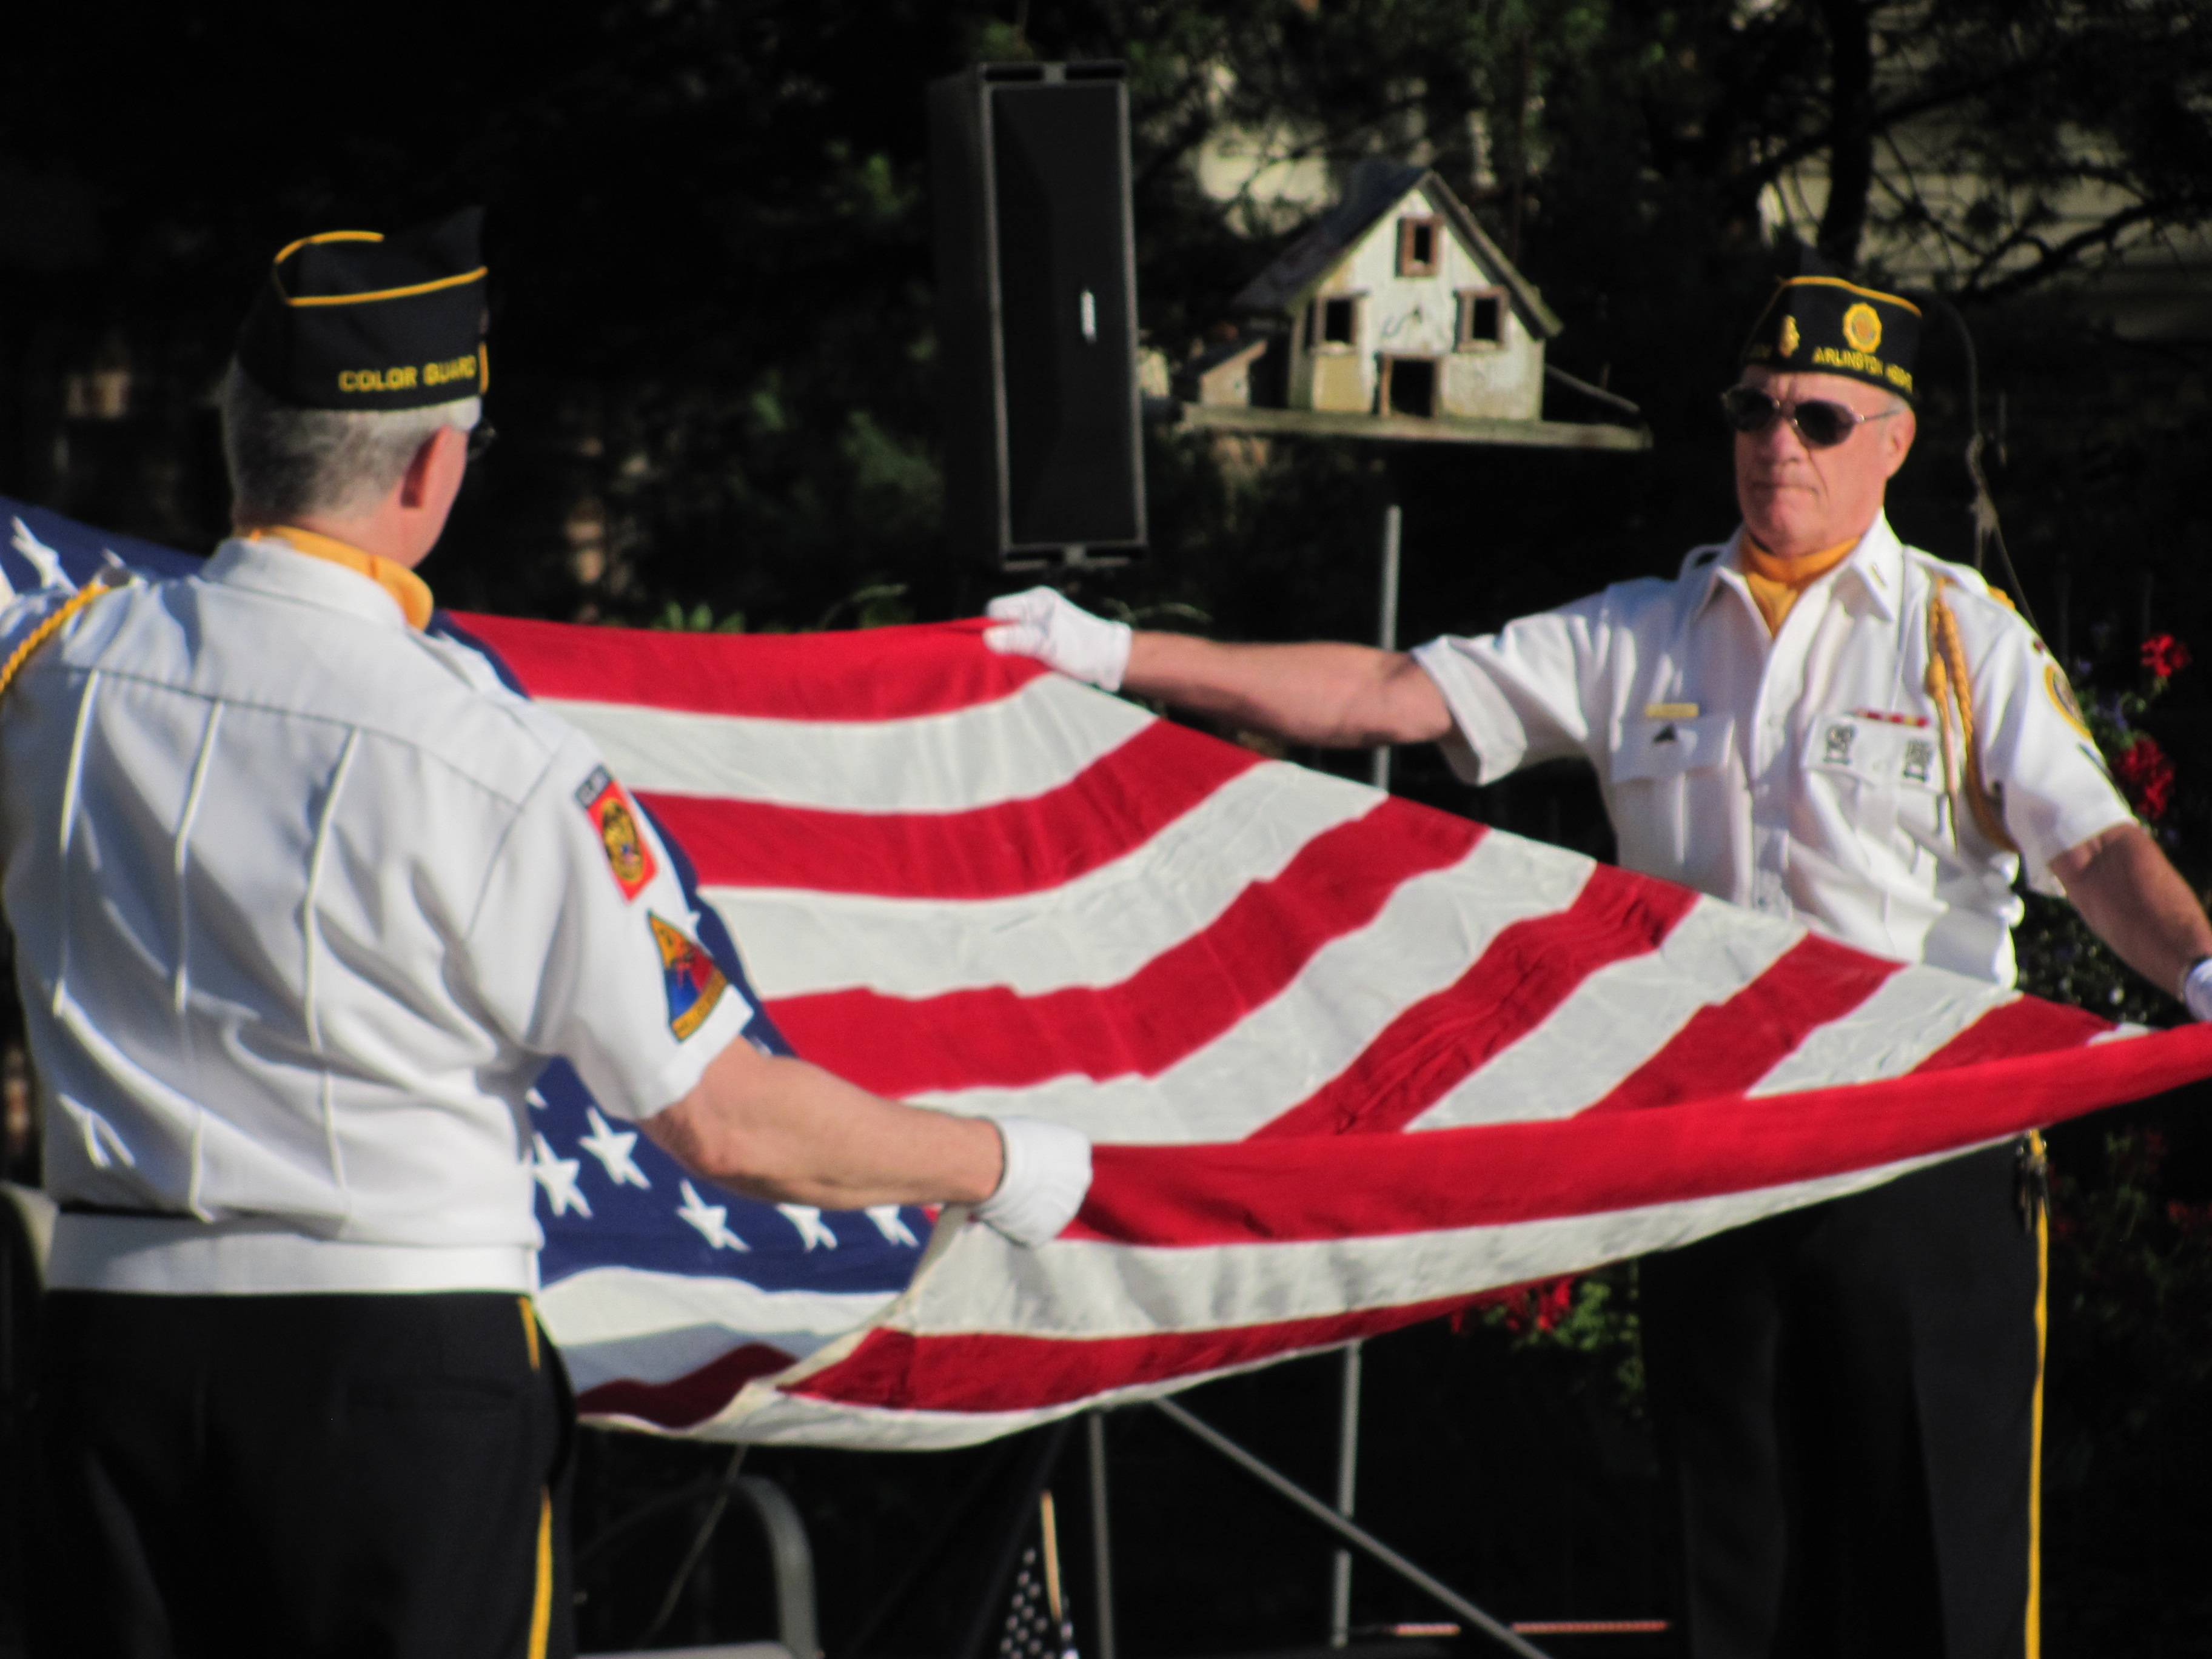 American Legion Merle Guild Post 208 award-winning color guard in Flag folding ceremony at Rotary event in the Glueckert family's backyard.Rob Gollberg